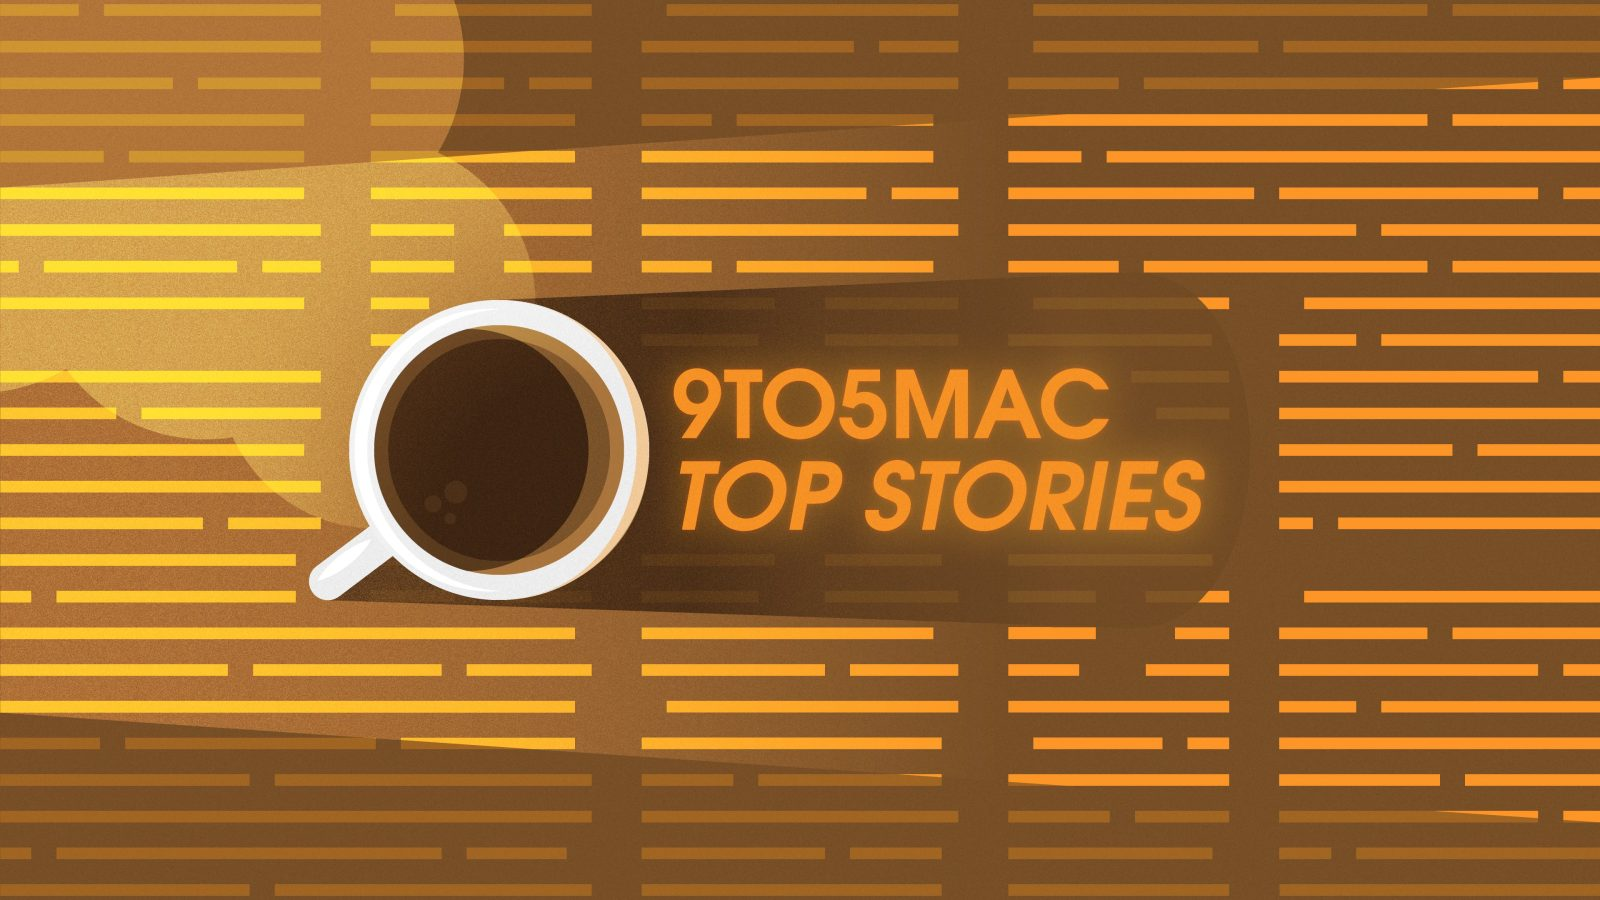 This week's top stories: iPhone 12 case design, 2020 iPad Pro leak, Apple Maps, more